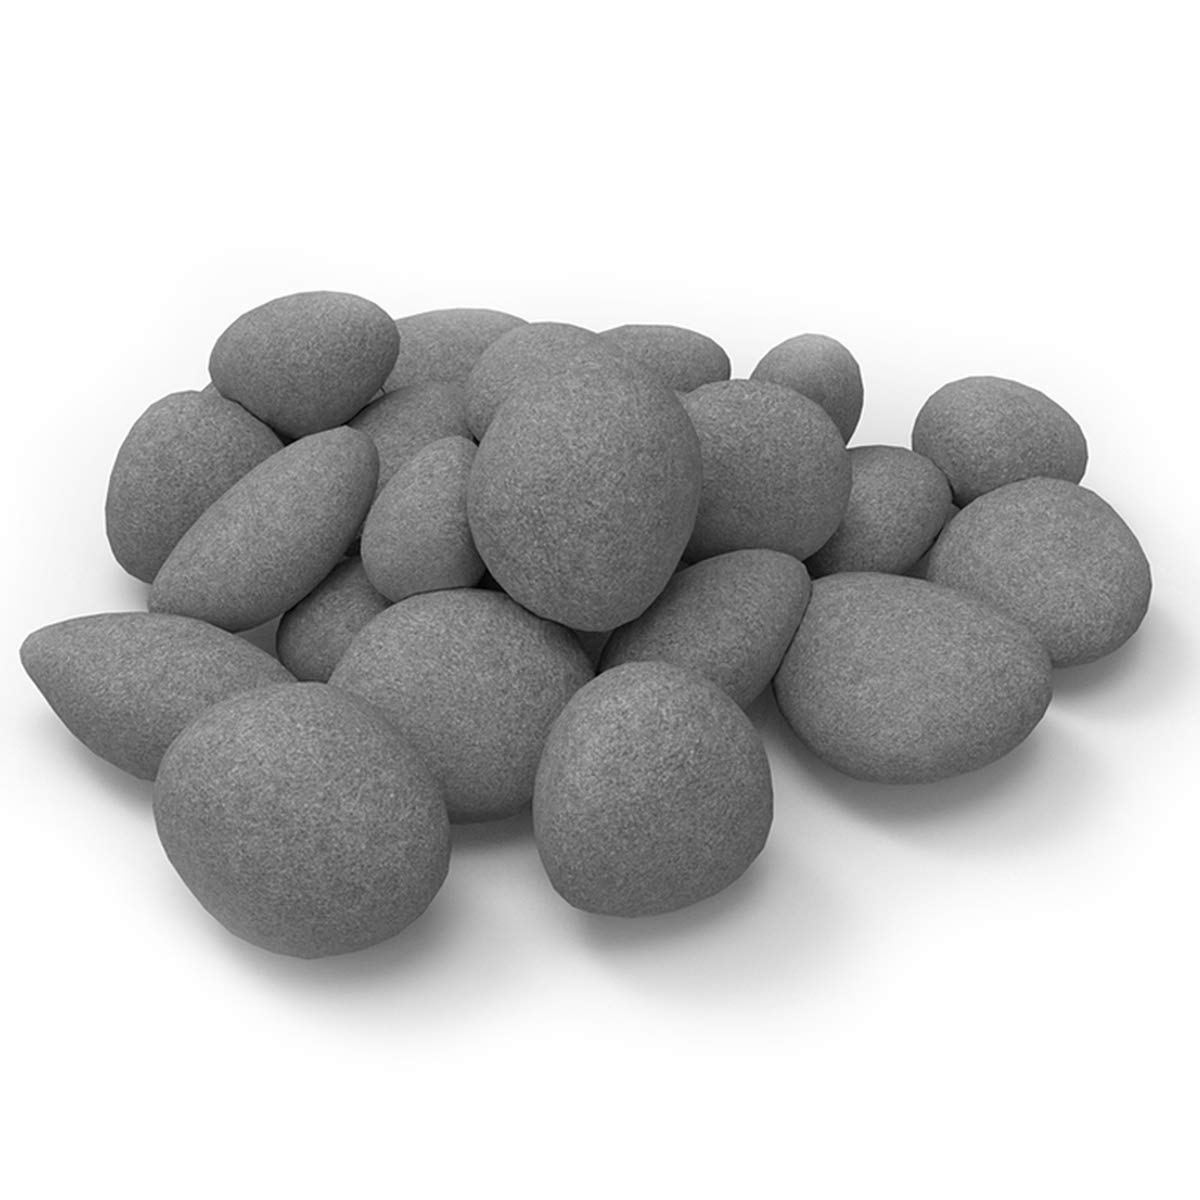 Regal Flame Set of 24 Light Weight Ceramic Fiber Gas Ethanol Electric Fireplace Pebbles in Gray by Regal Flame